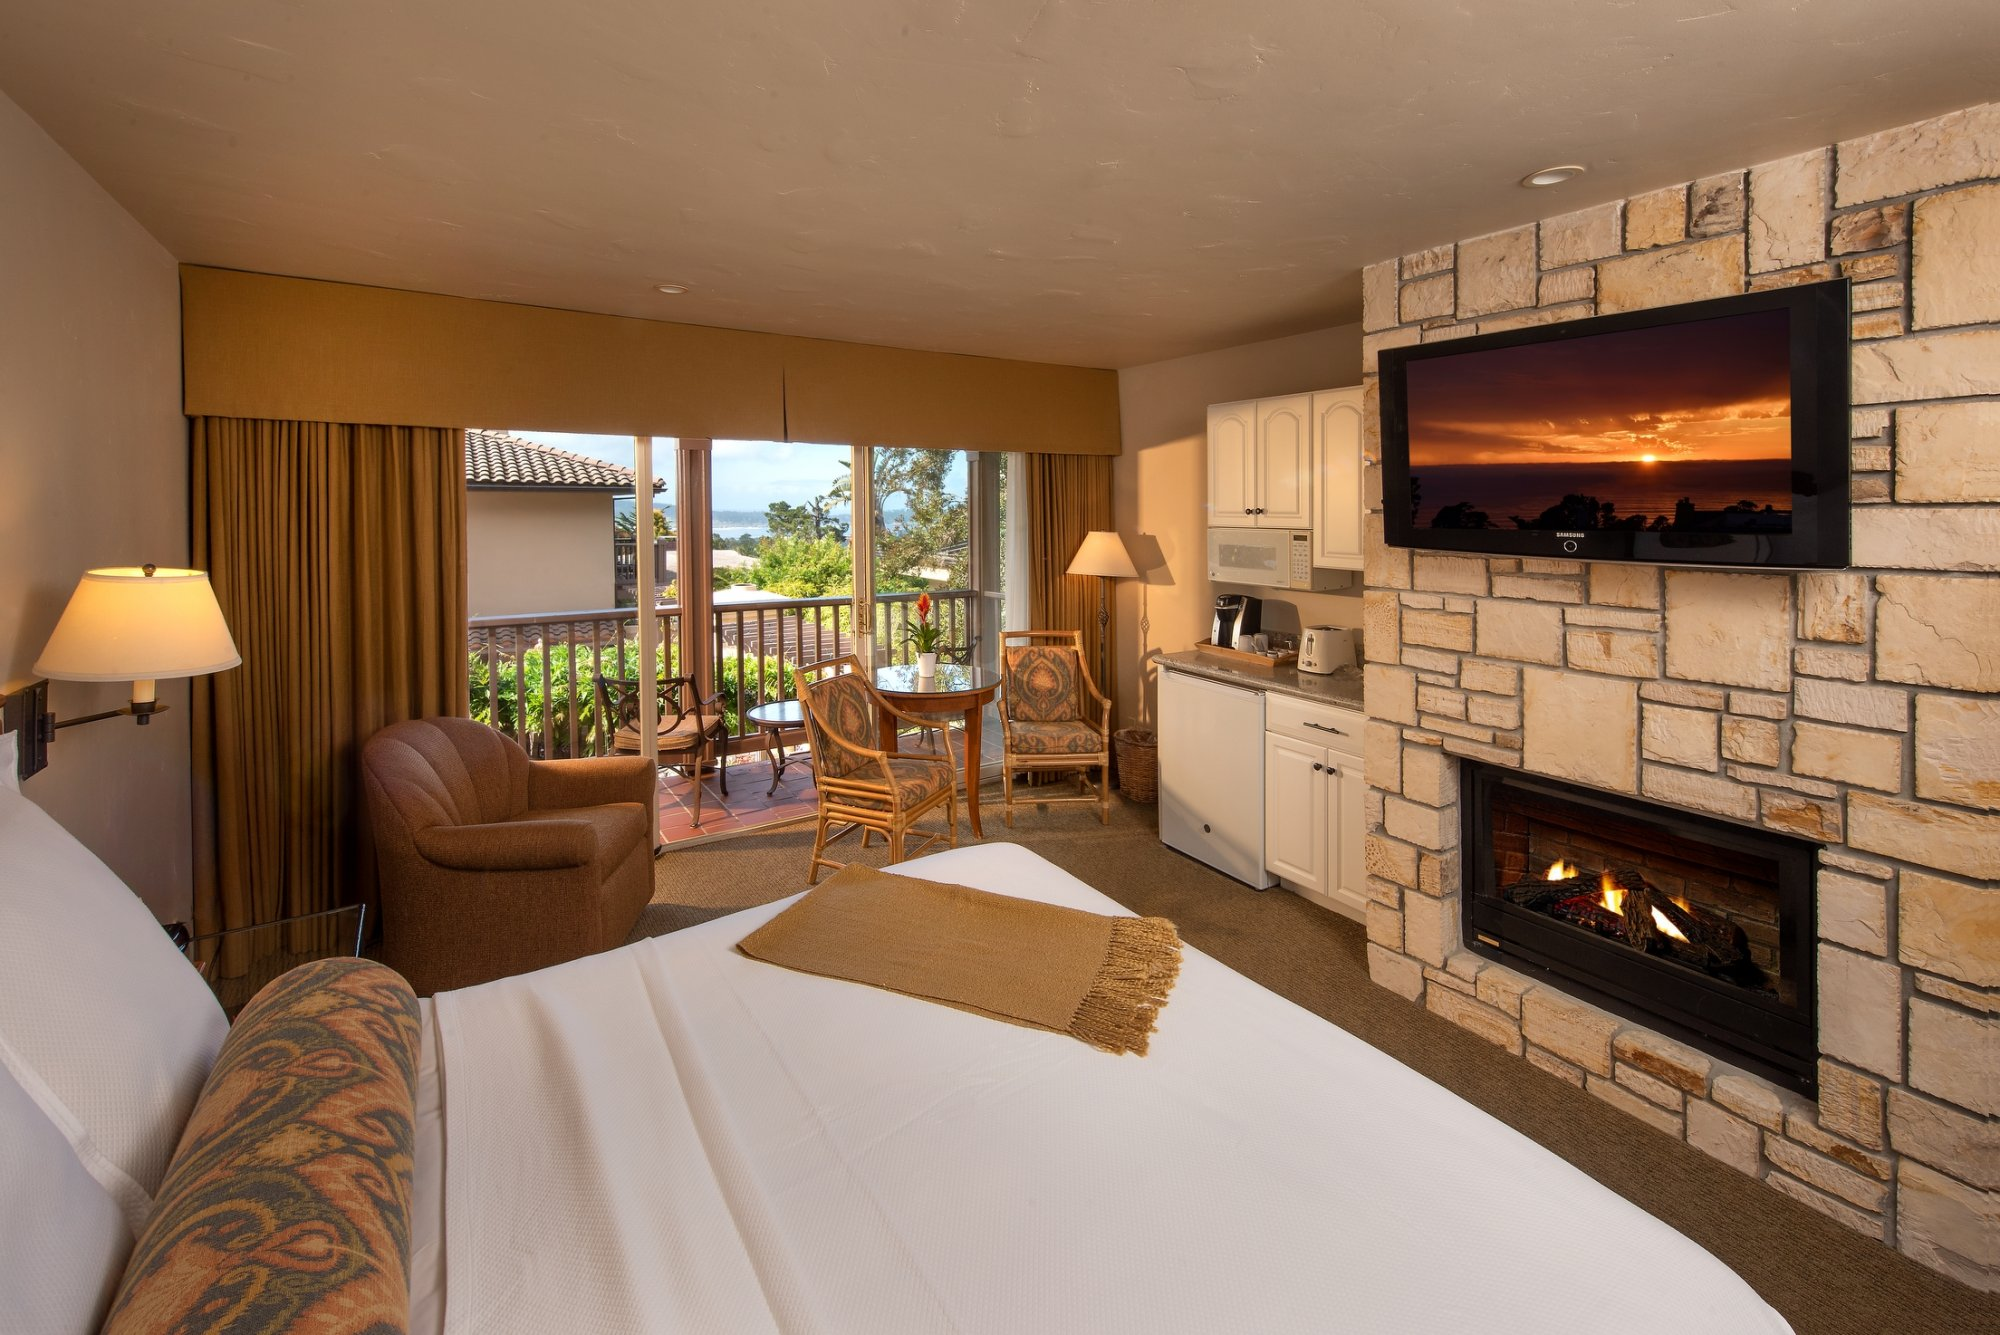 Bed facing fireplace with balcony and Ocean View